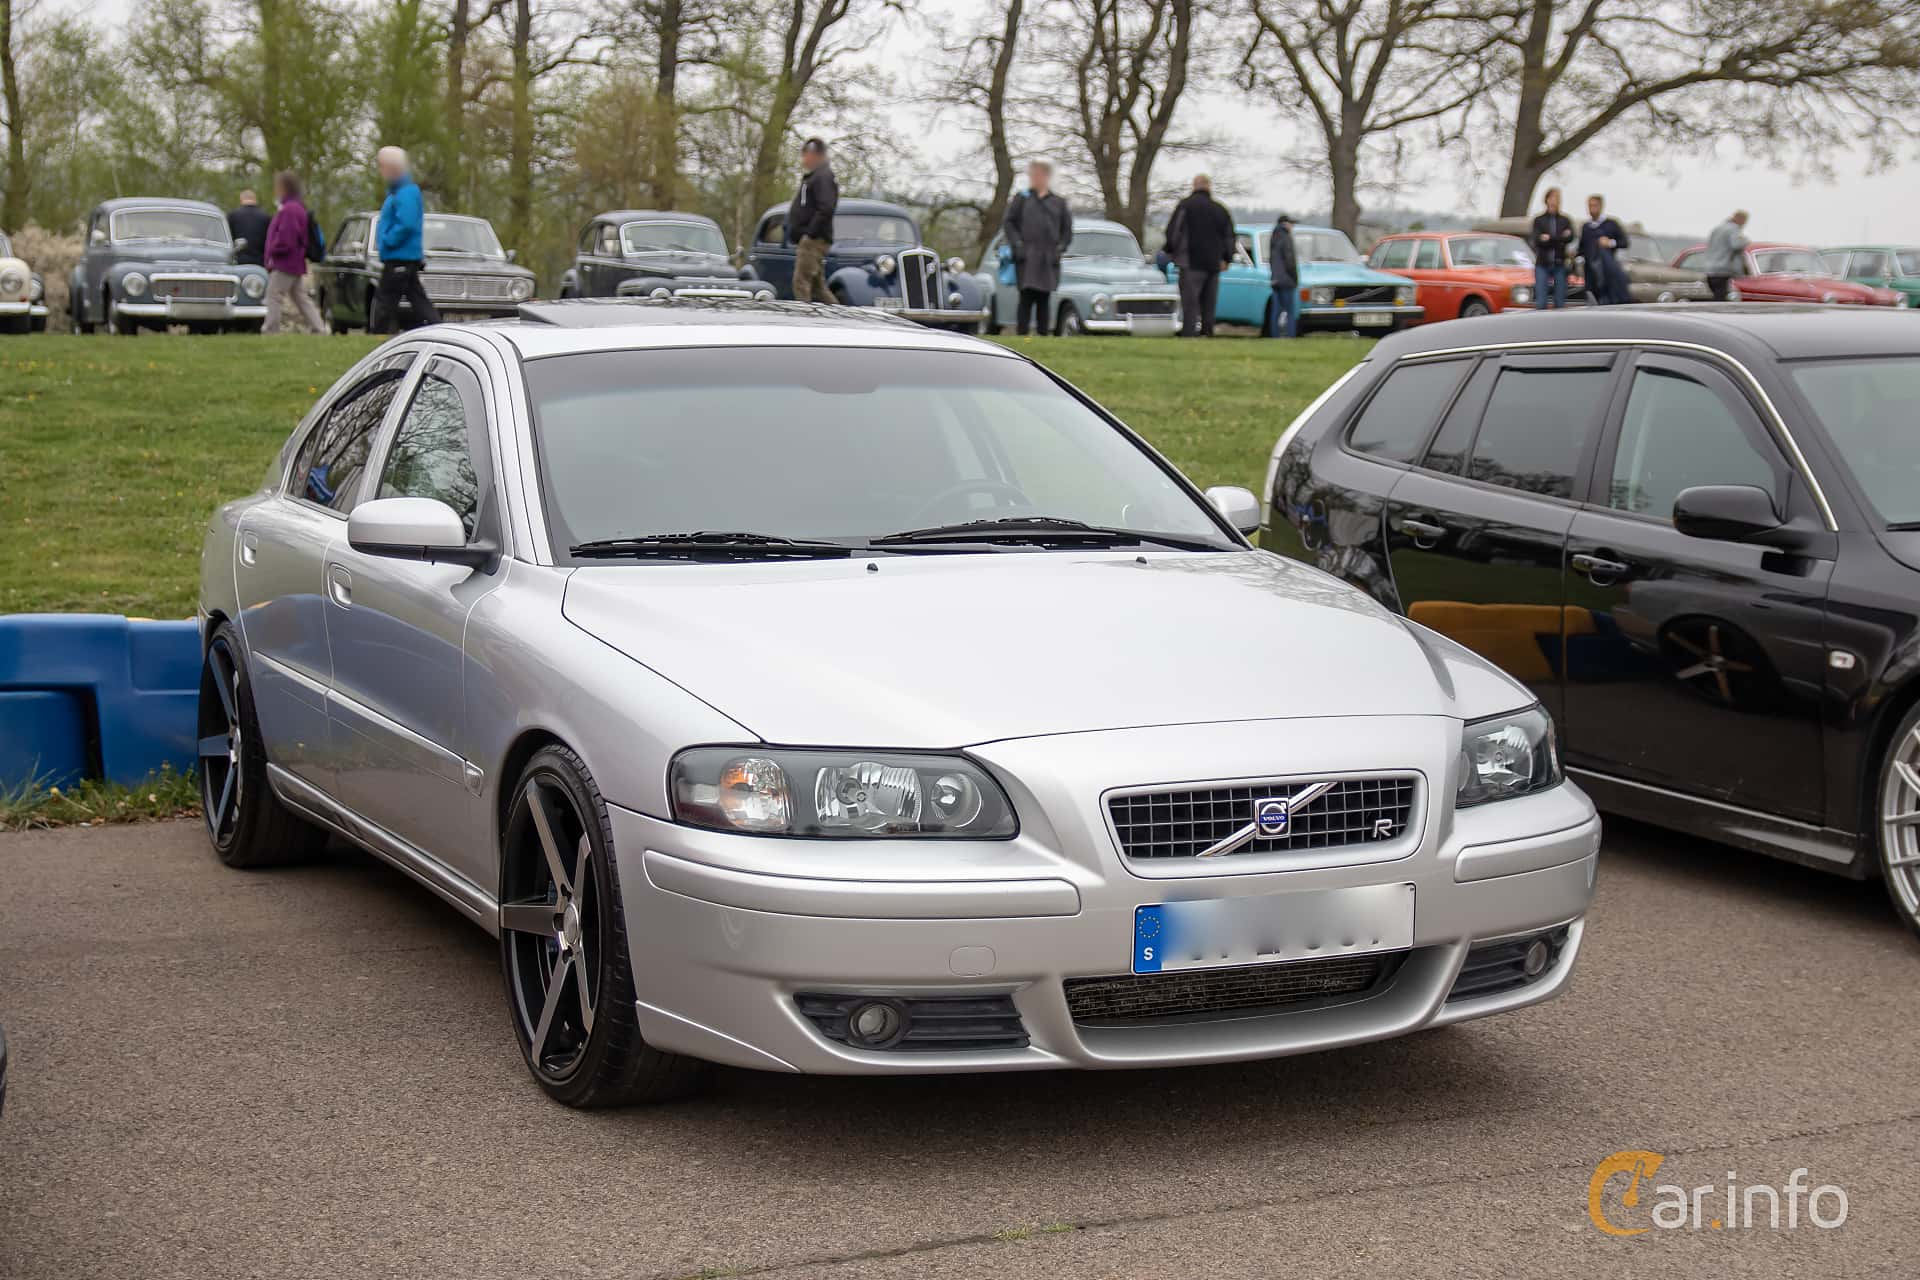 Volvo S60 2.5T Manual, 210hp, 2004 at Lucys motorfest 2019